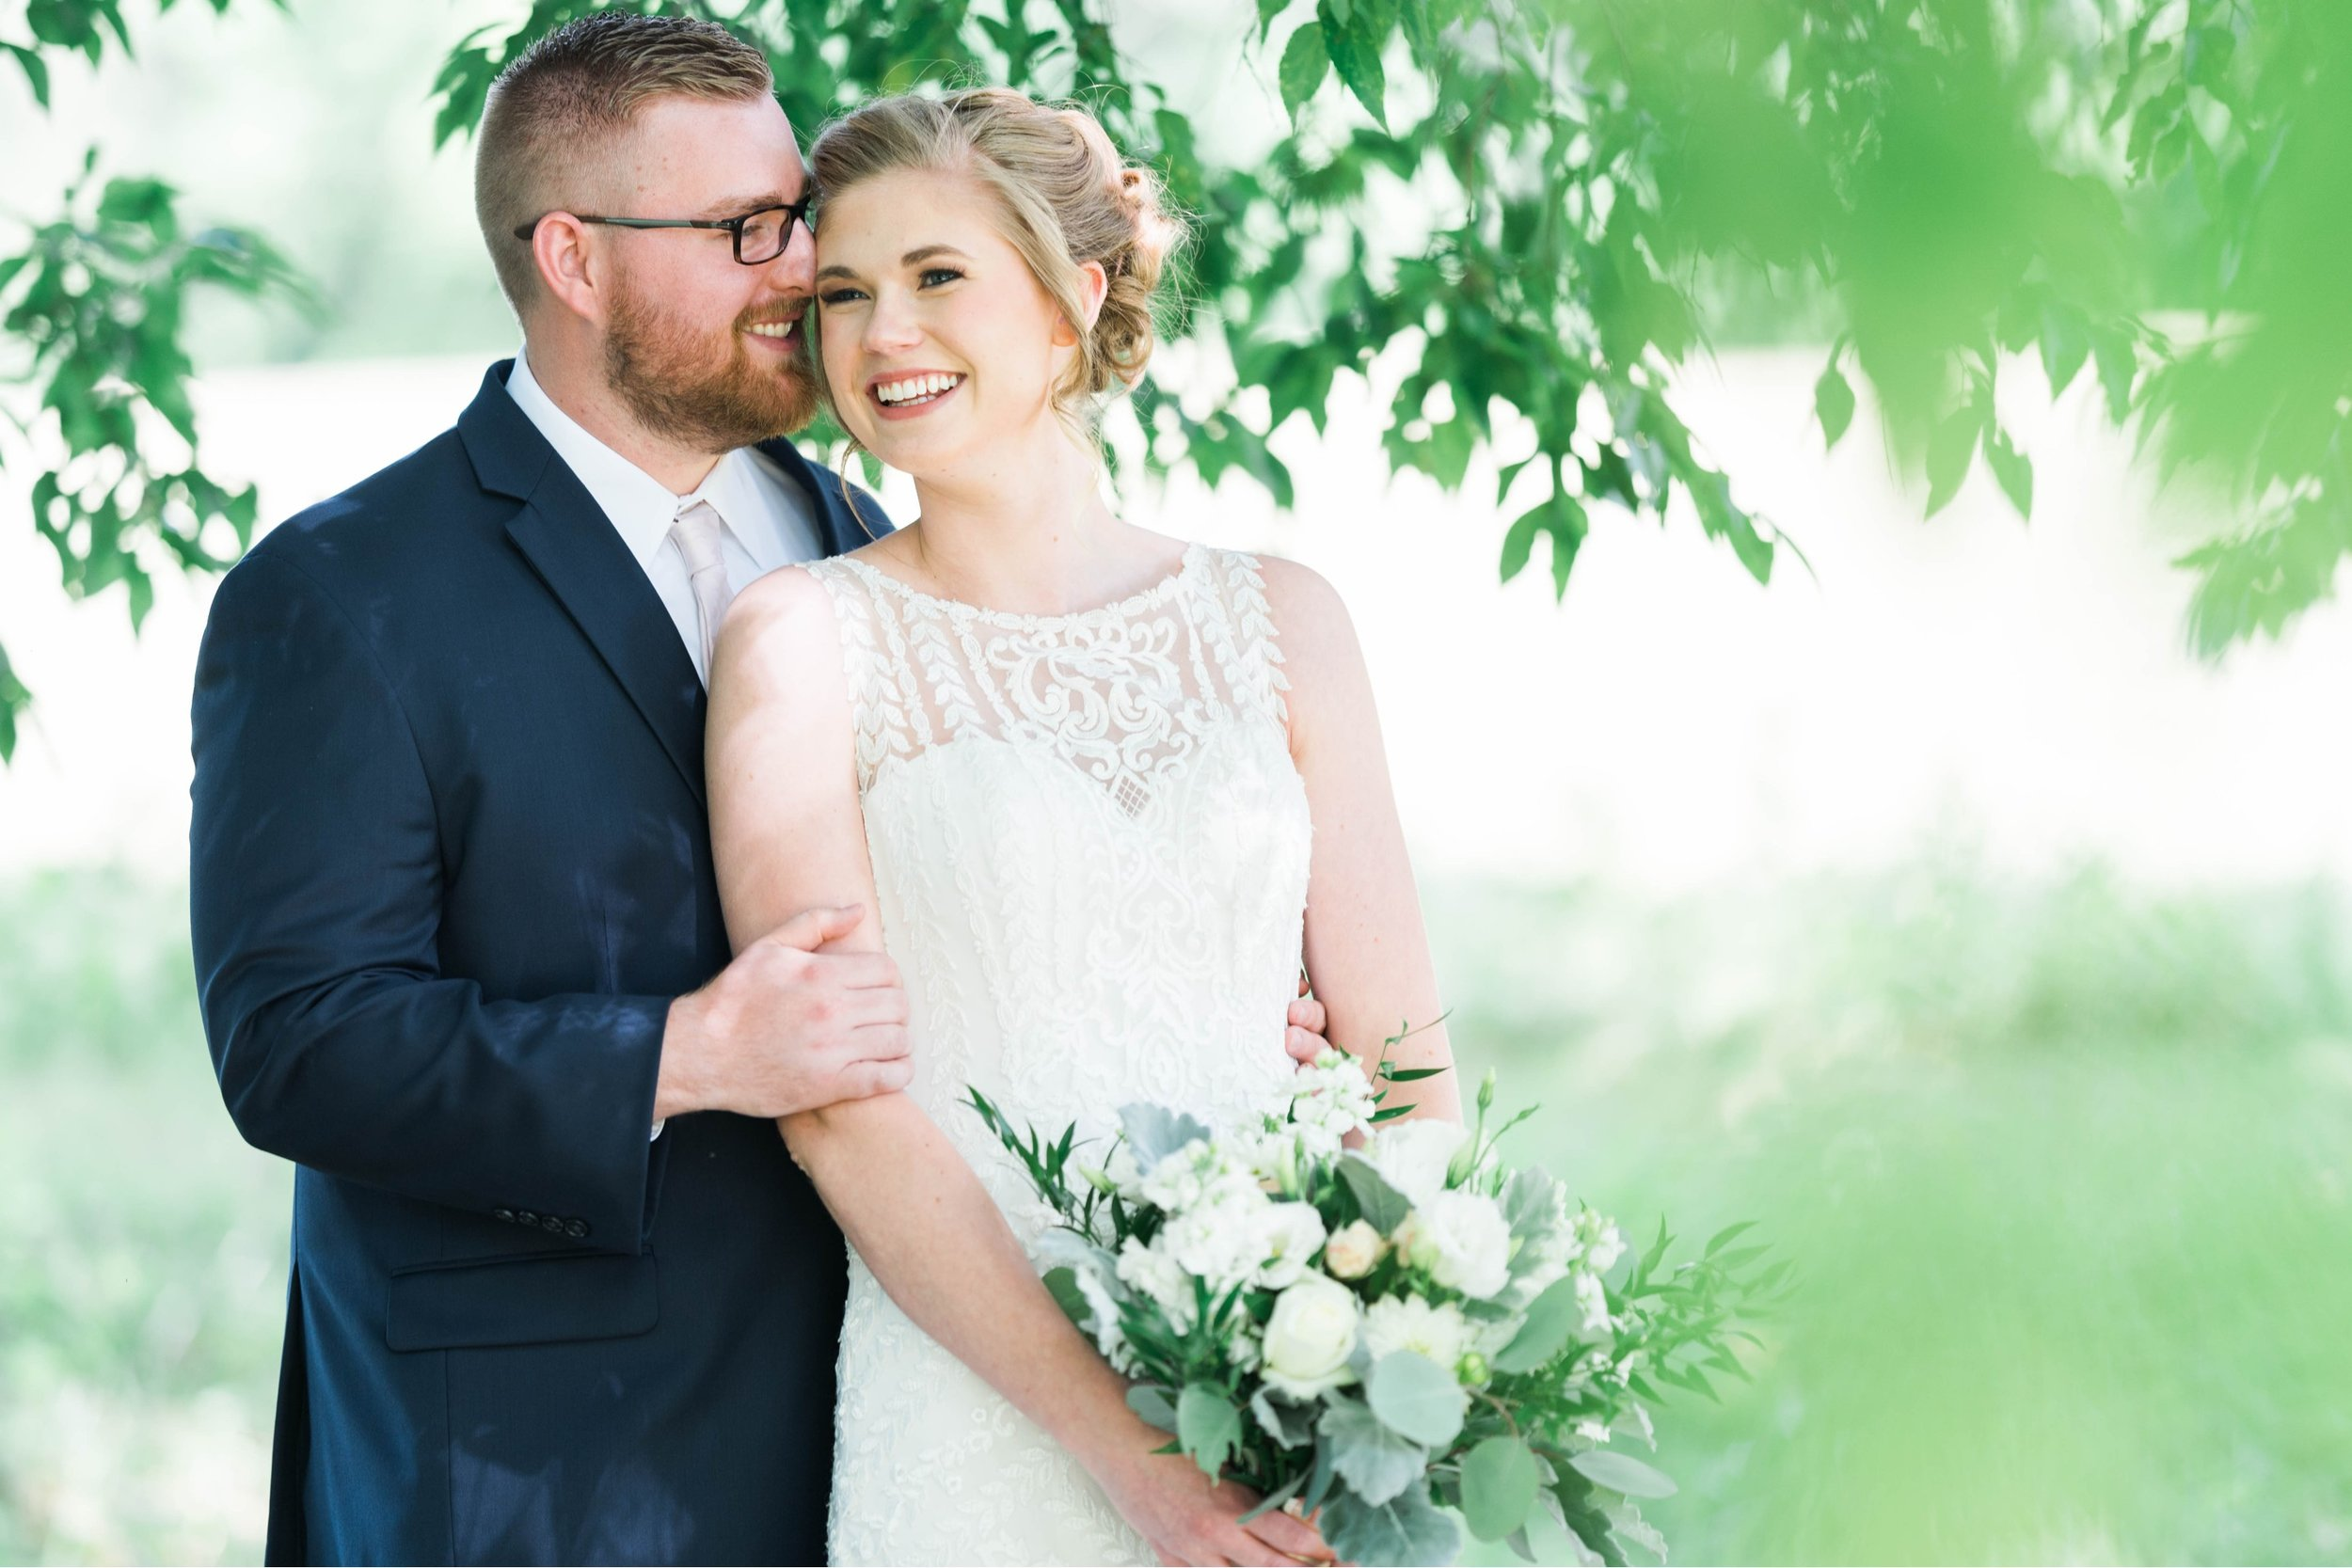 SorellaFarms_VirginiaWeddingPhotographer_BarnWedding_Lynchburgweddingphotographer_DanielleTyler 48.jpg